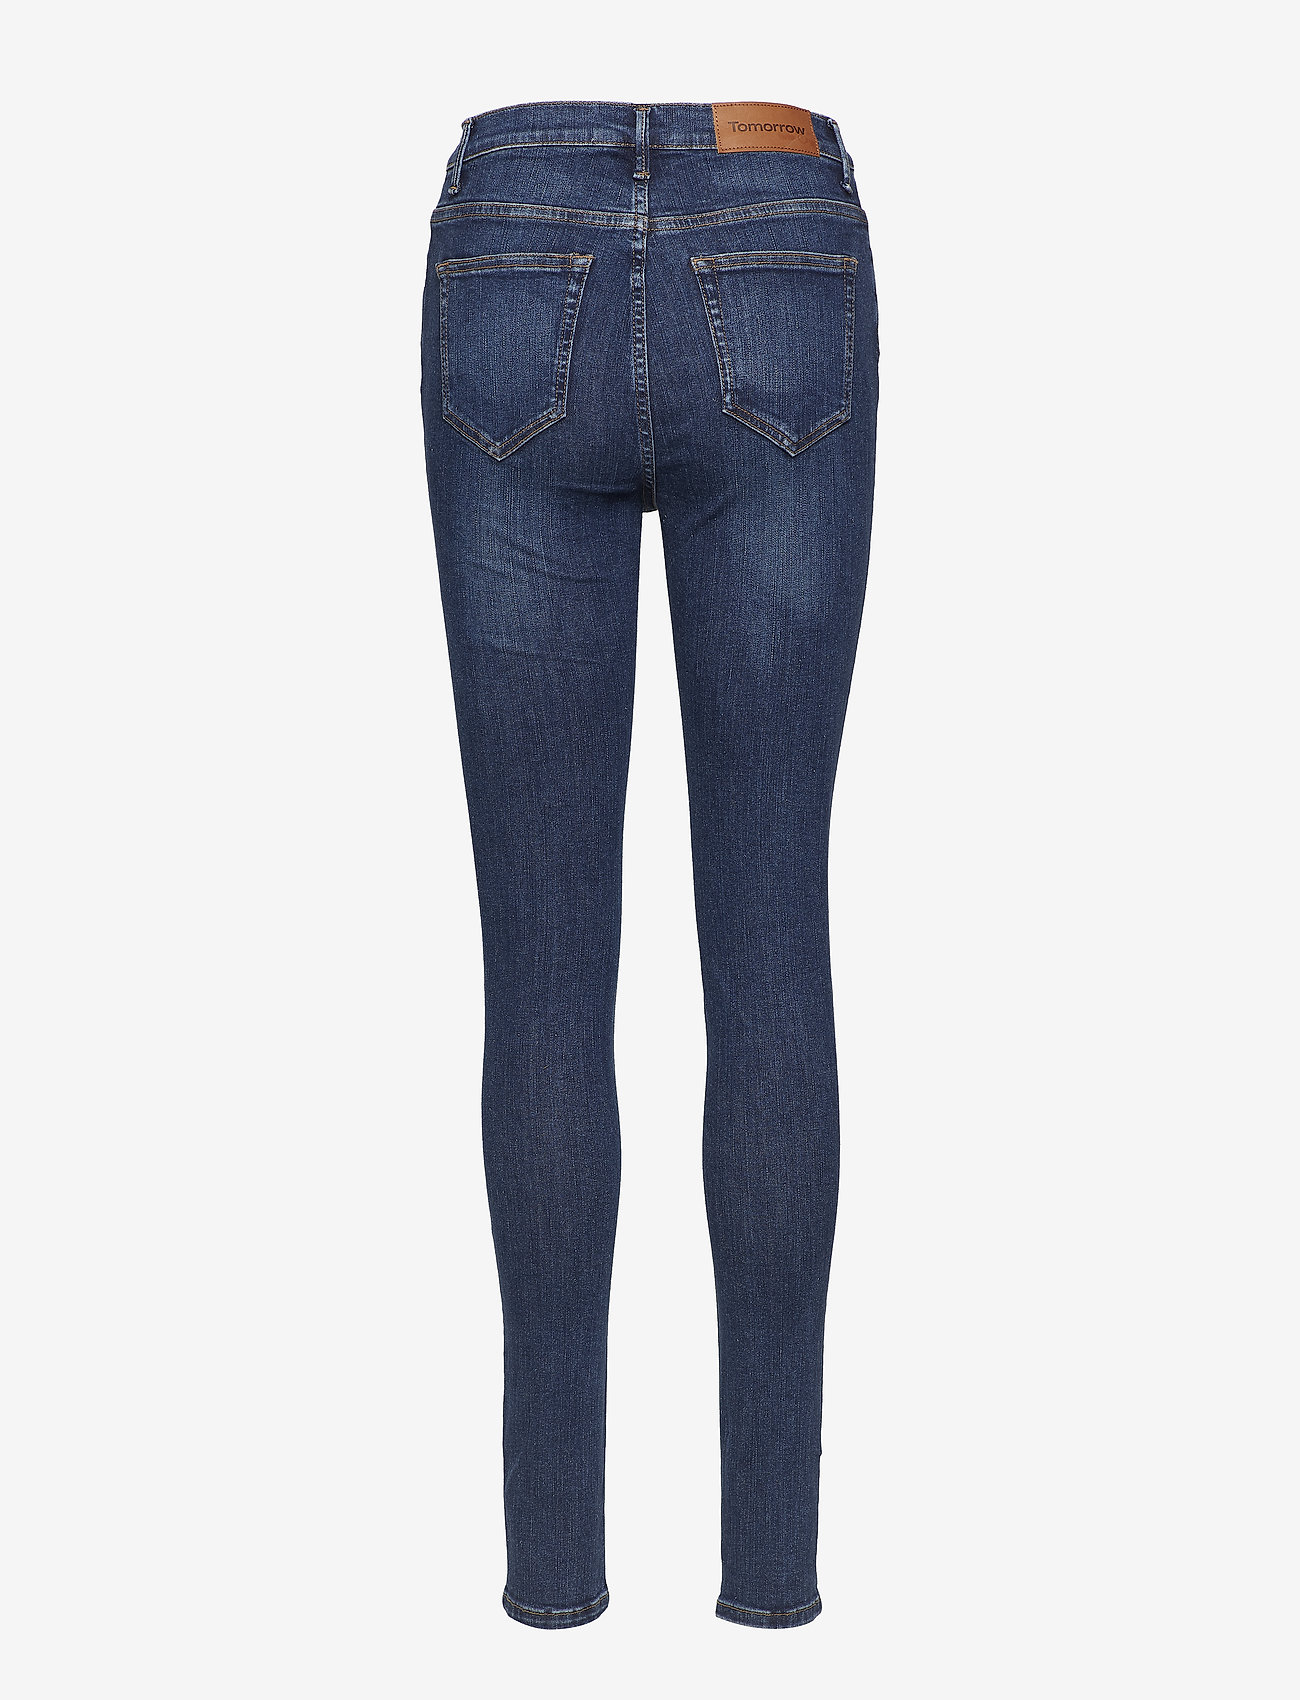 Tomorrow - Bowie HW skinny wash Stockholm - skinny jeans - 51 denim blue - 1